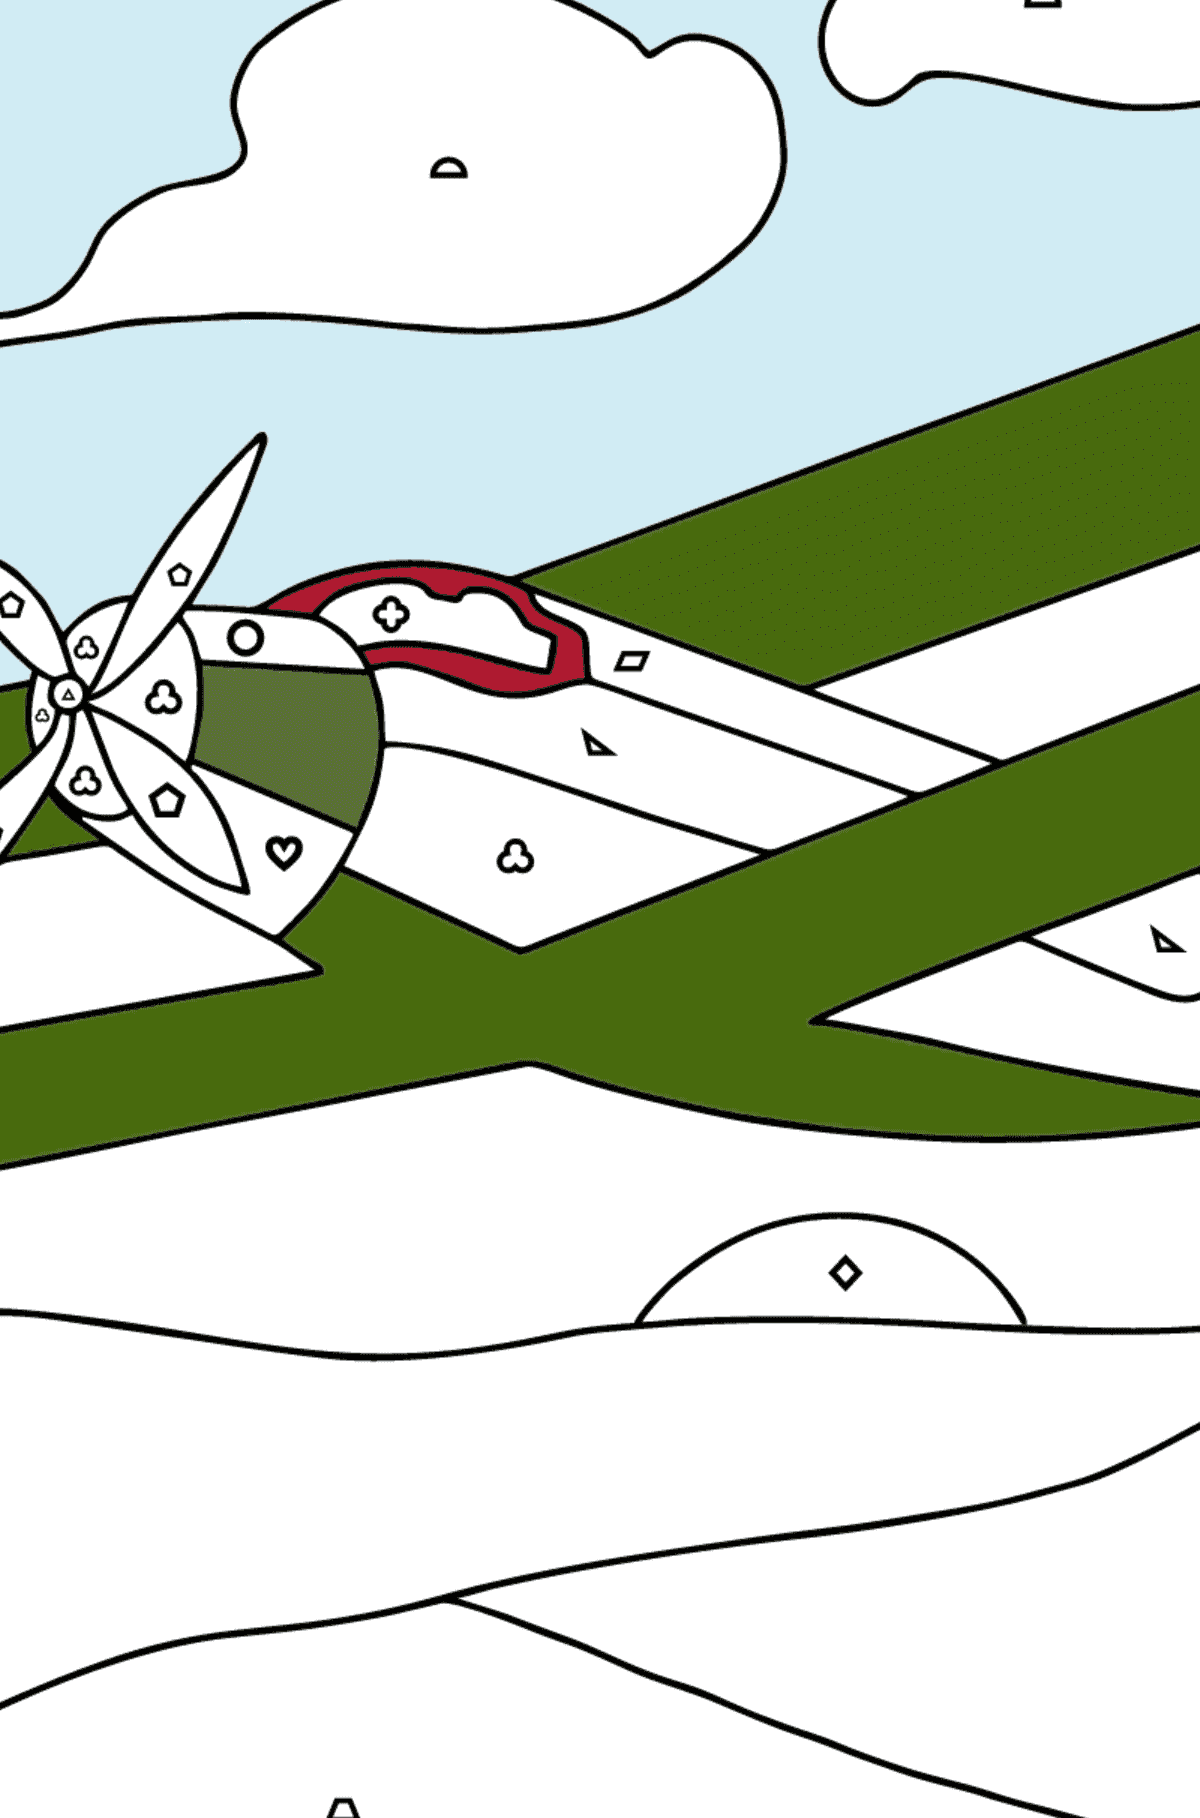 Coloring Page - A Biplane - Coloring by Geometric Shapes for Children